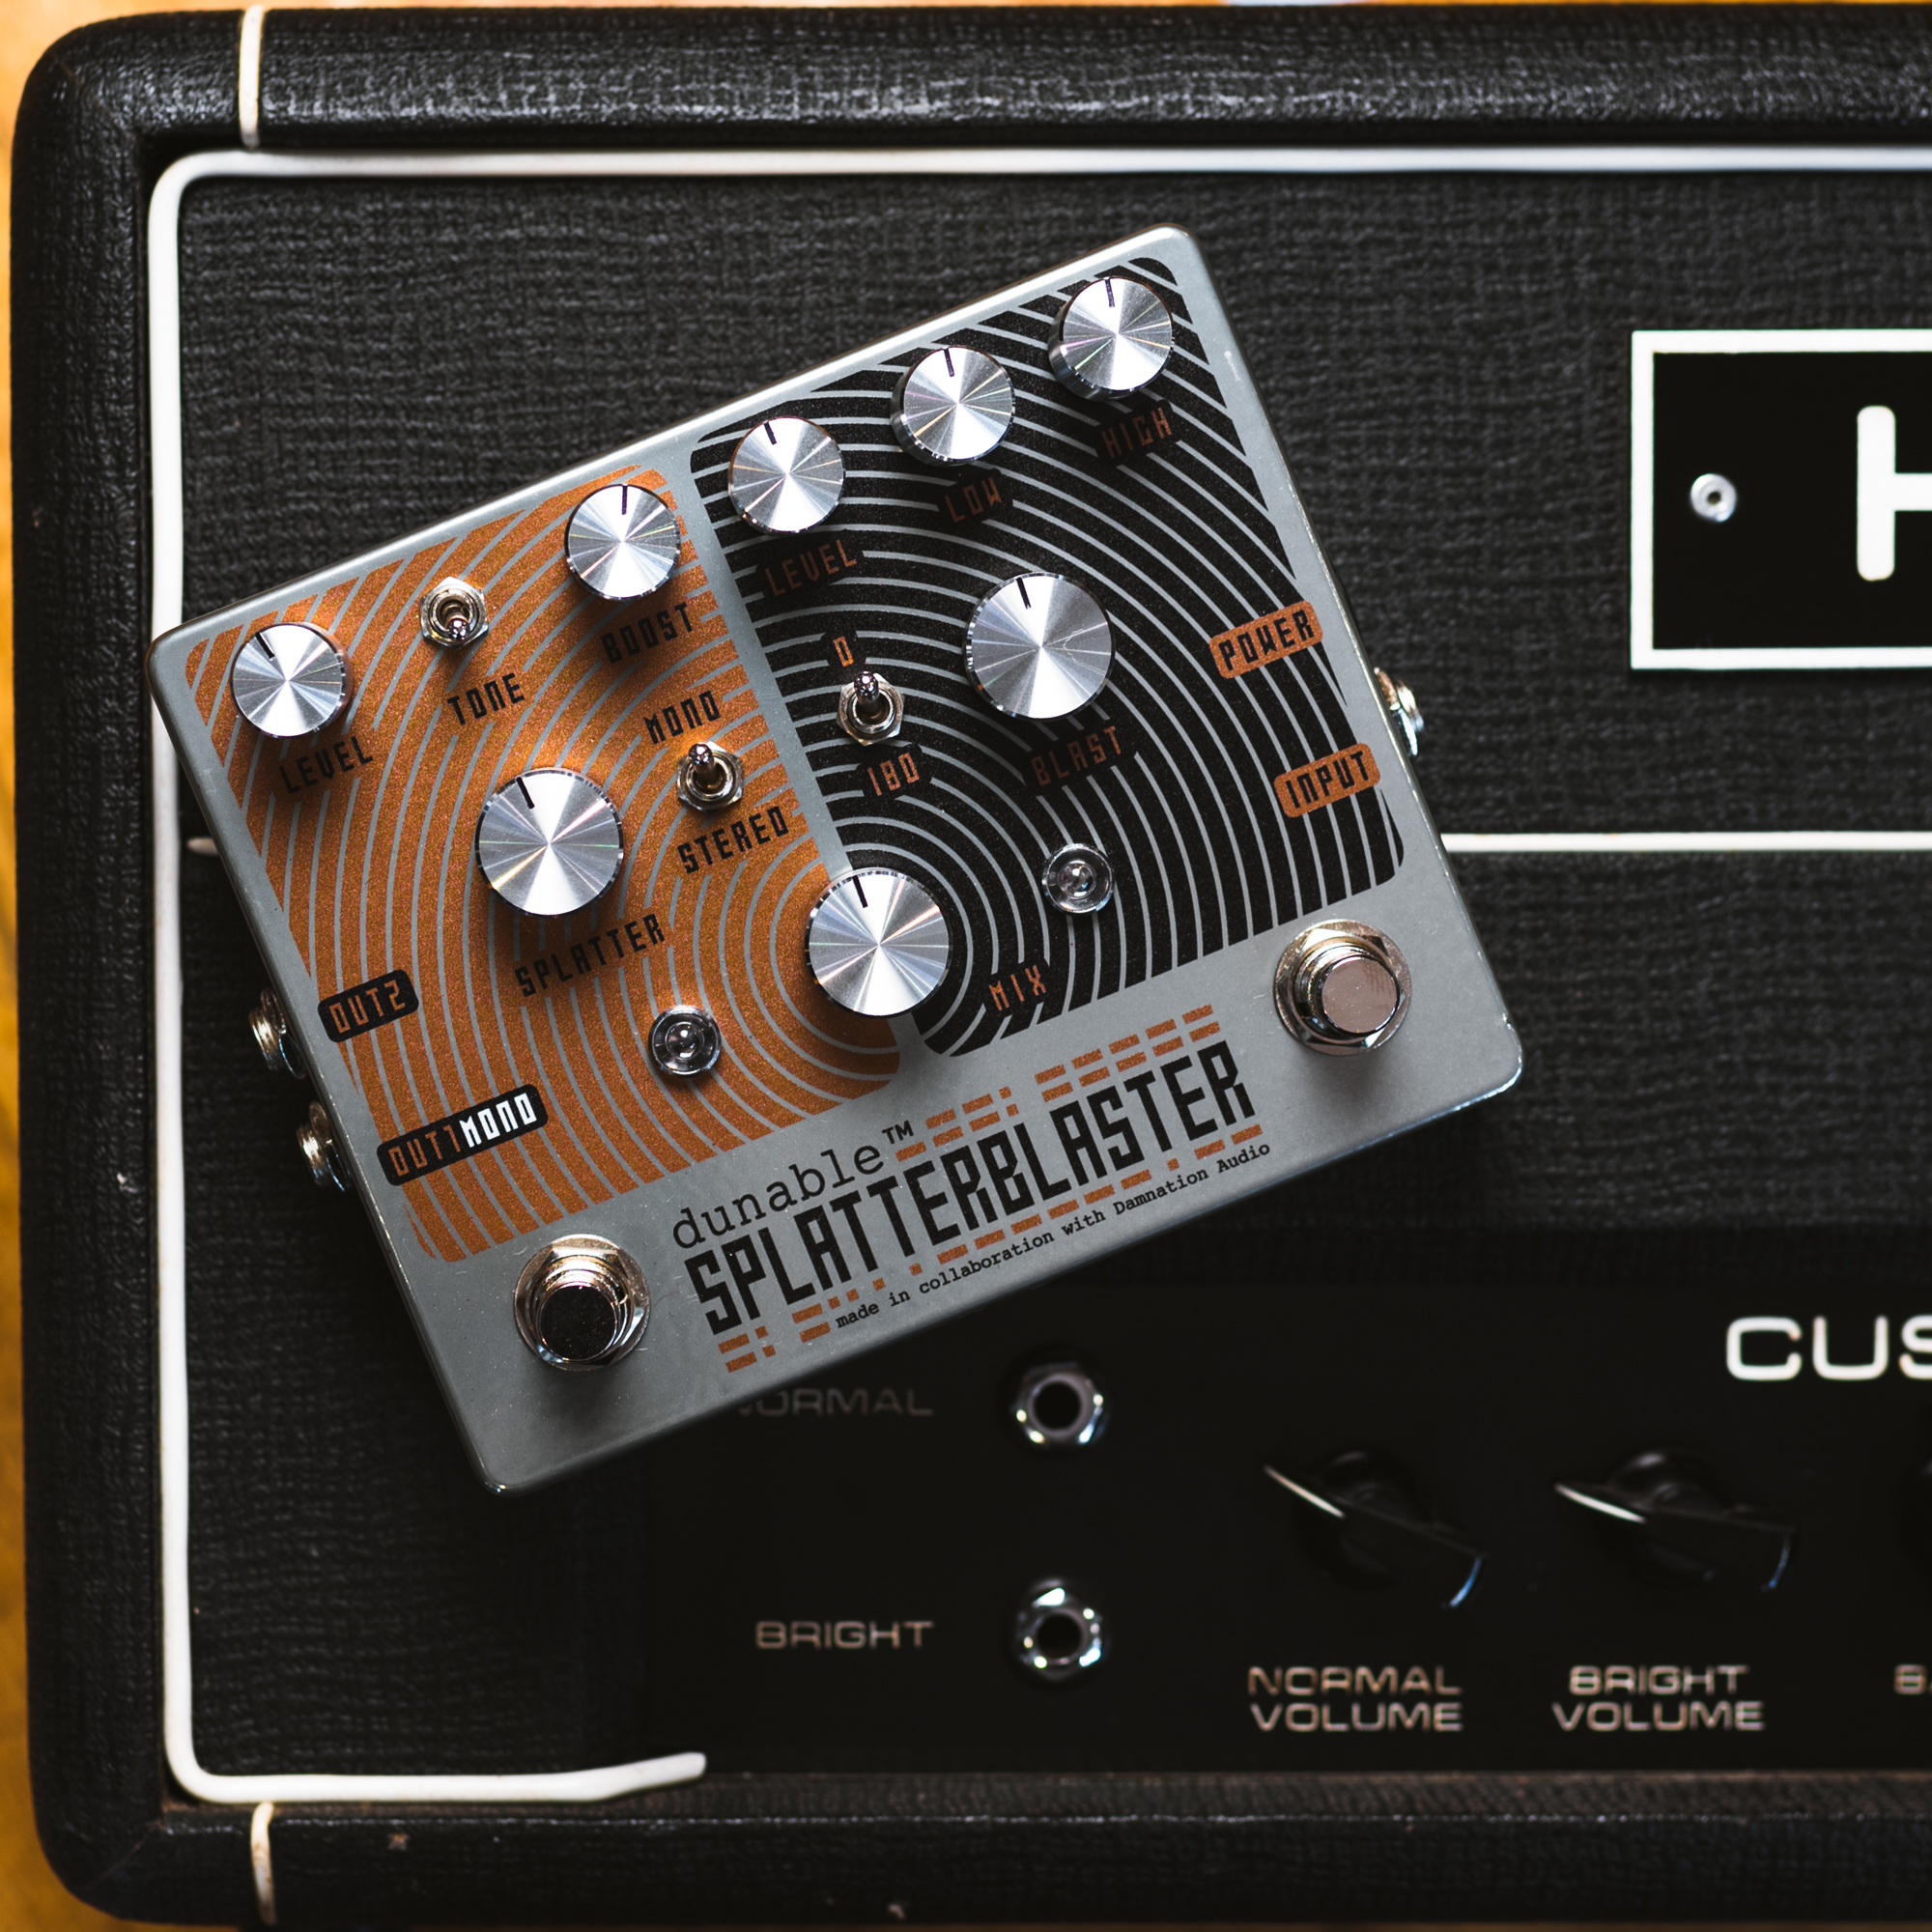 Made For Chicago Music Exchange Dunable Splatter Blaster Guitar Distortion Circuit On Wiring Options The Side Is Based A Classic Superfuzz With An Added Boost And Blast Ornery Not Unlike Pedal